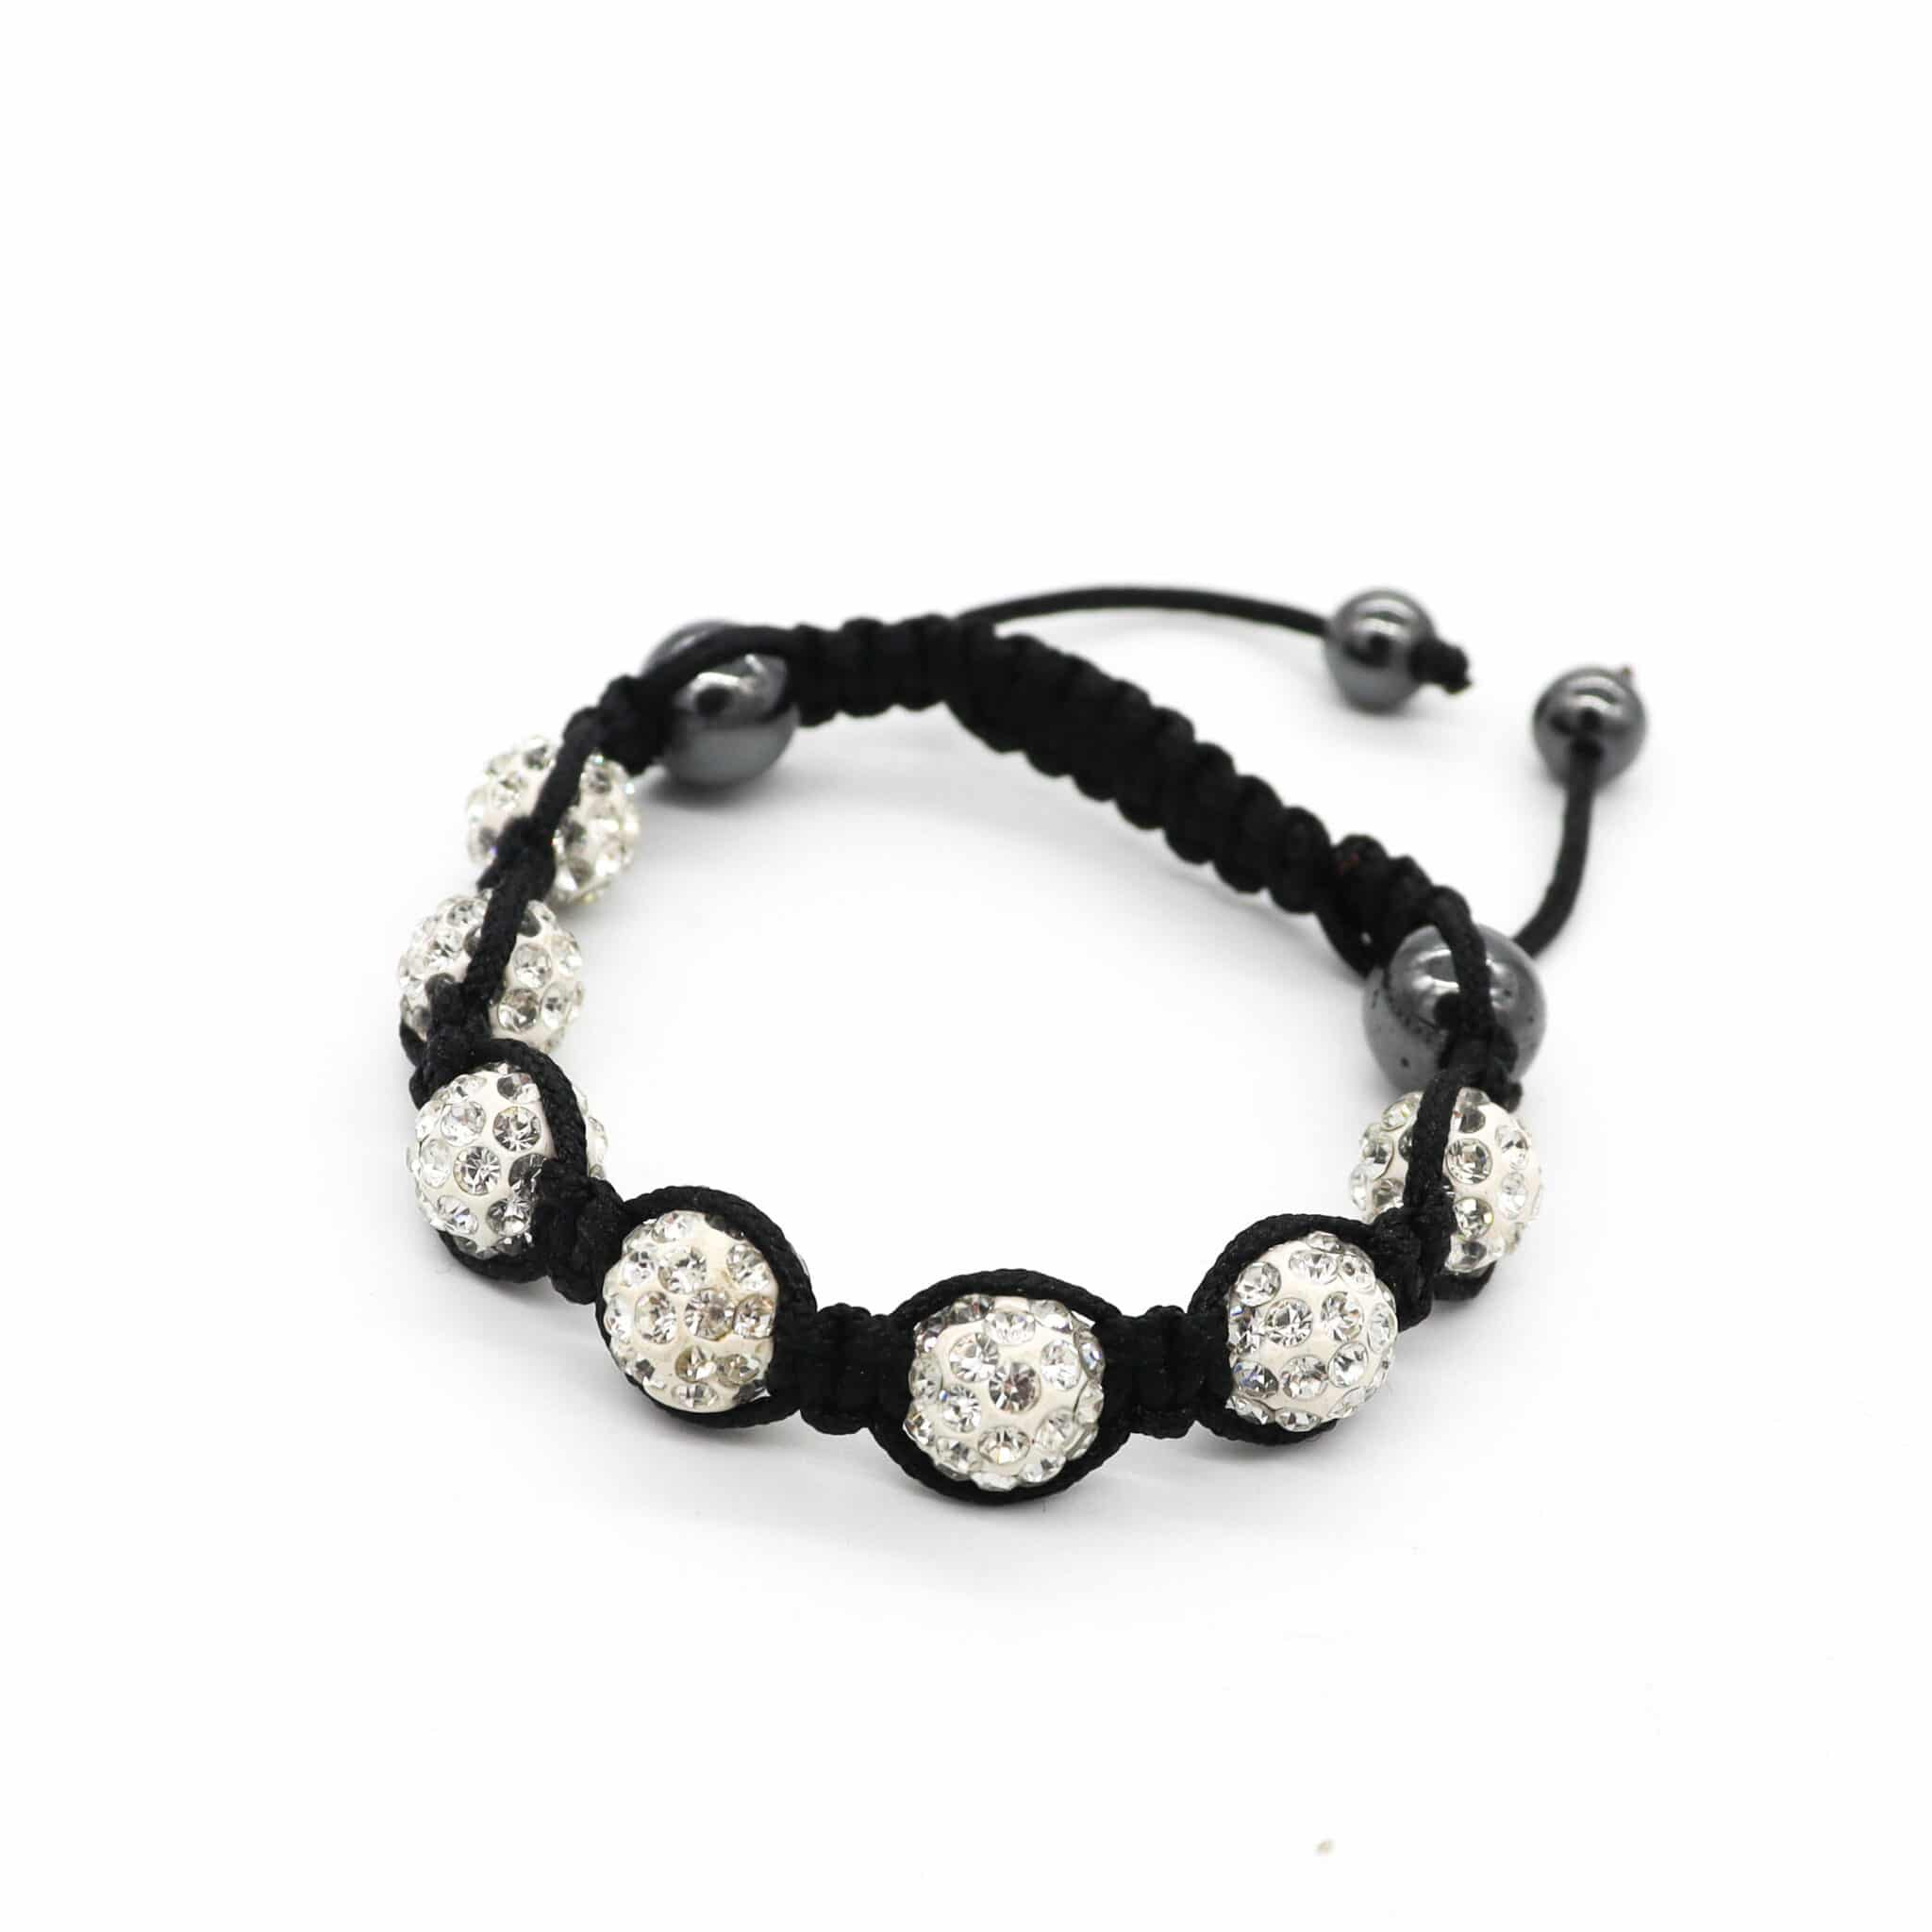 Striking White Beads With Silver Encrusted Diamantes Adjustable Bracelet  By BJewel*Co